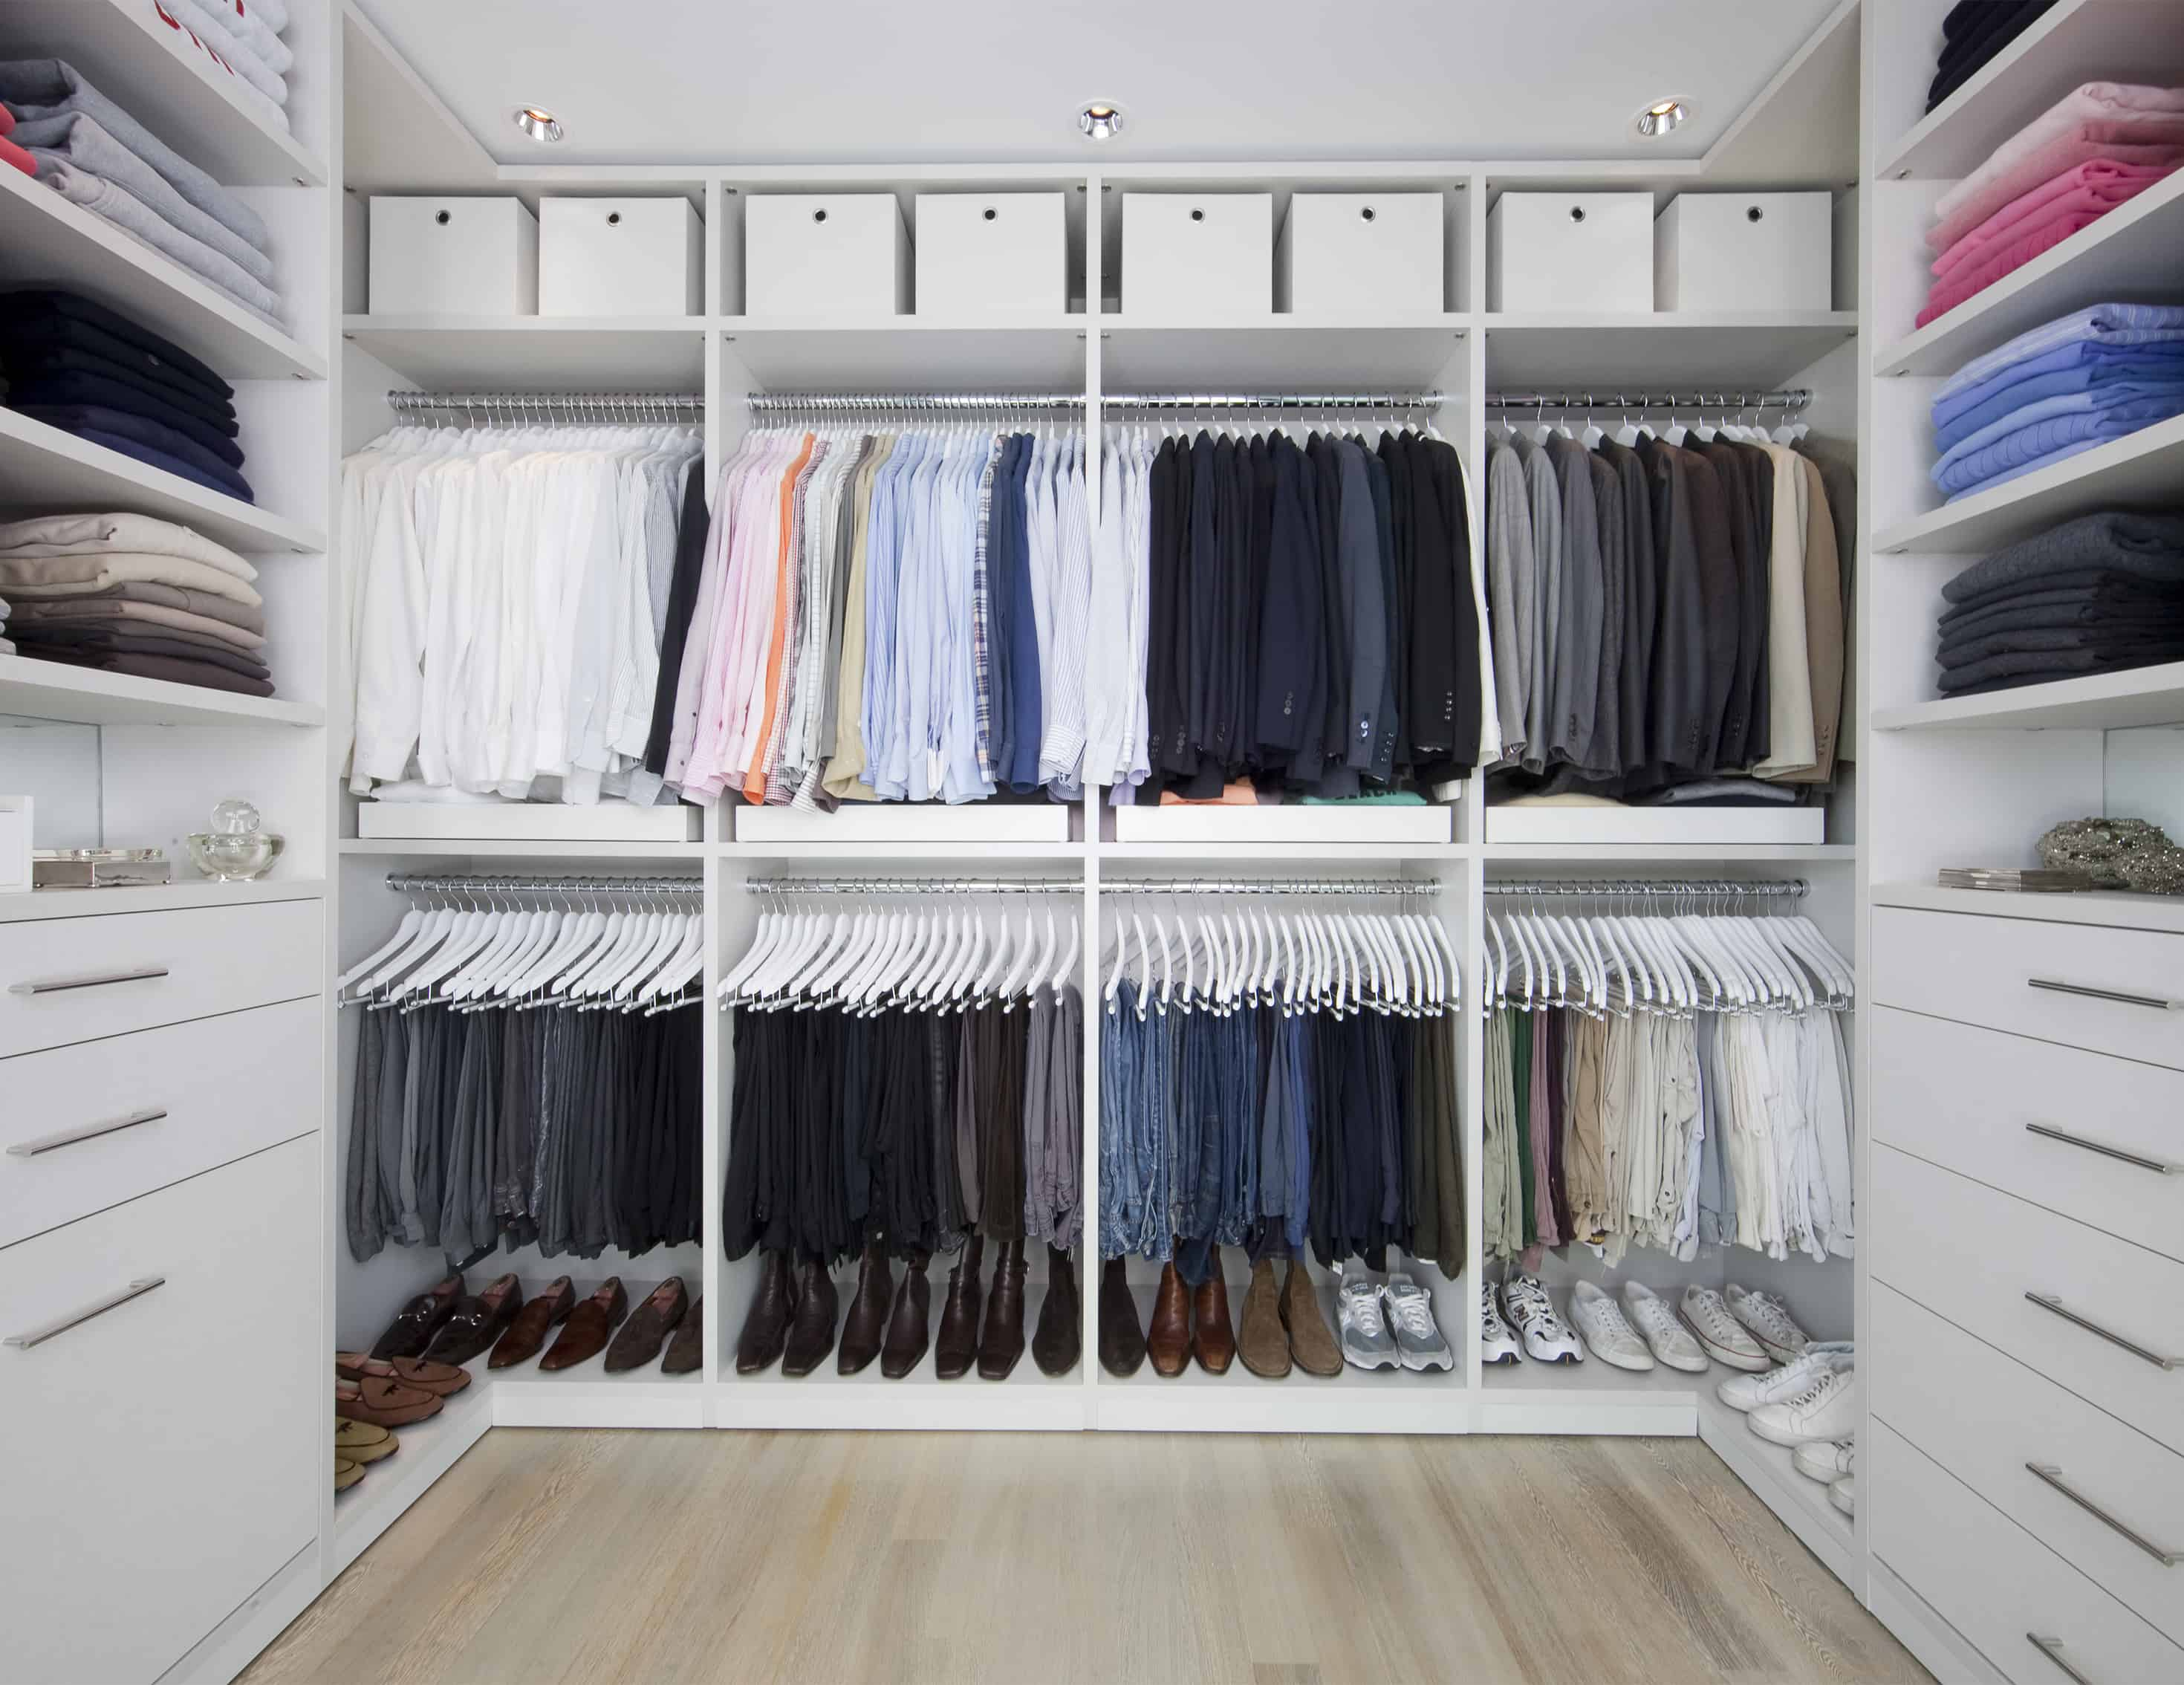 double hanging in closet Closet organization ideas to help you get the most out of your space